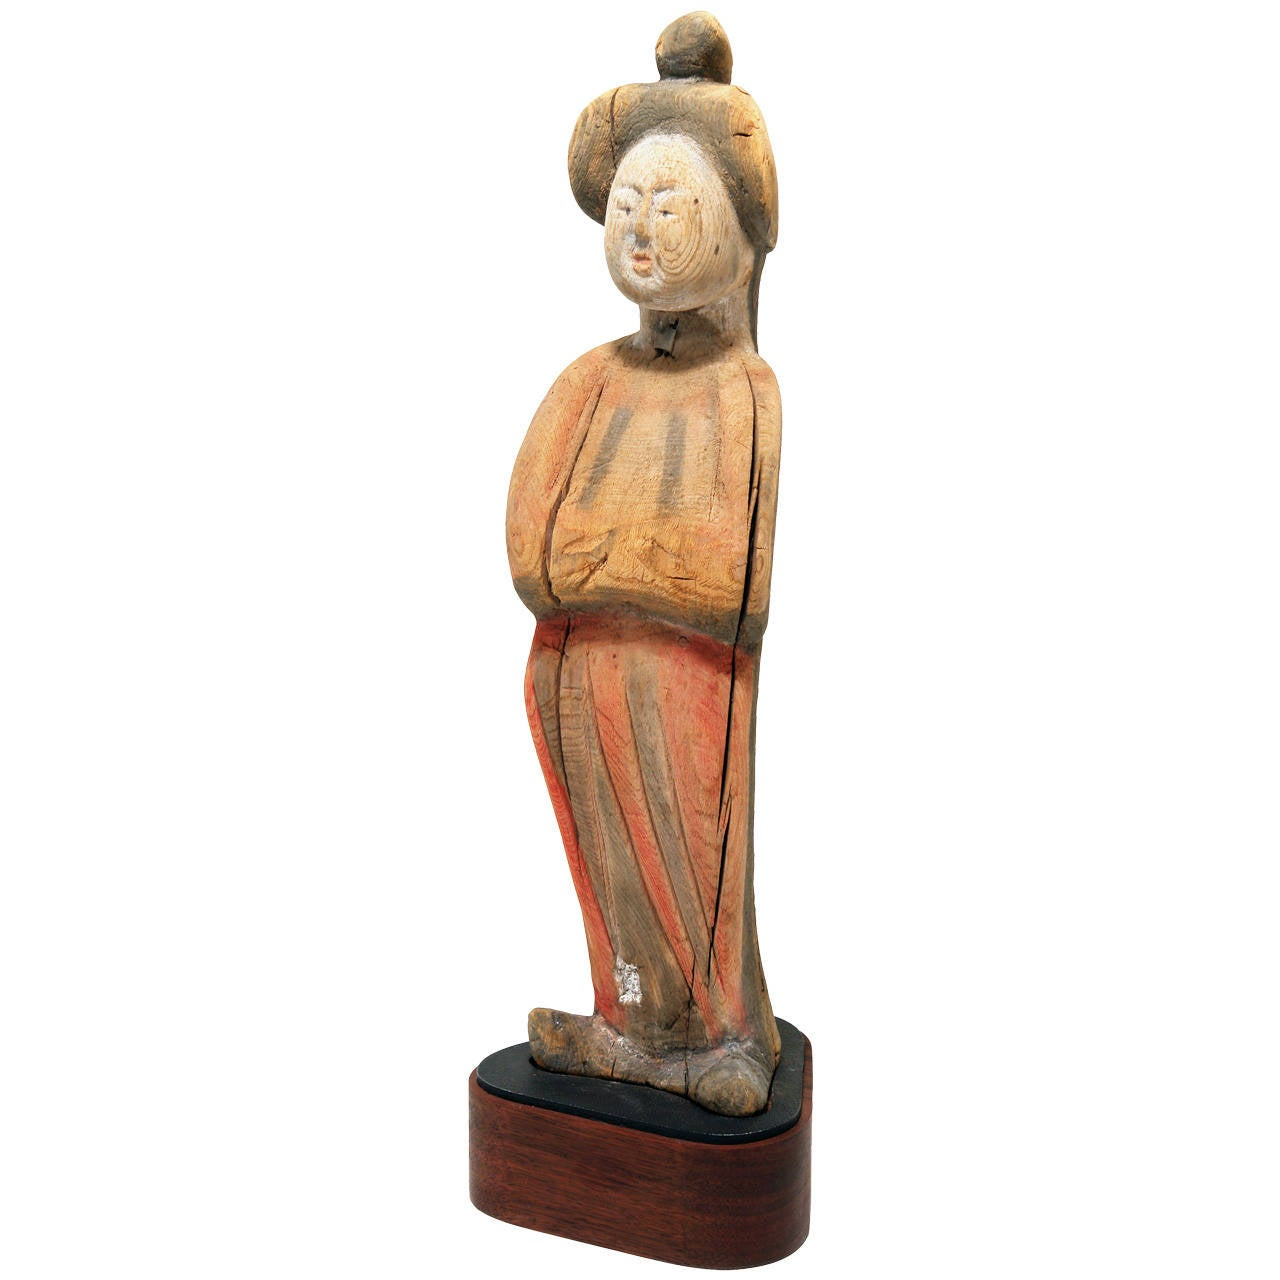 Tang Dynasty Figure of a Lady, Wood with Pigments, 8th Century AD